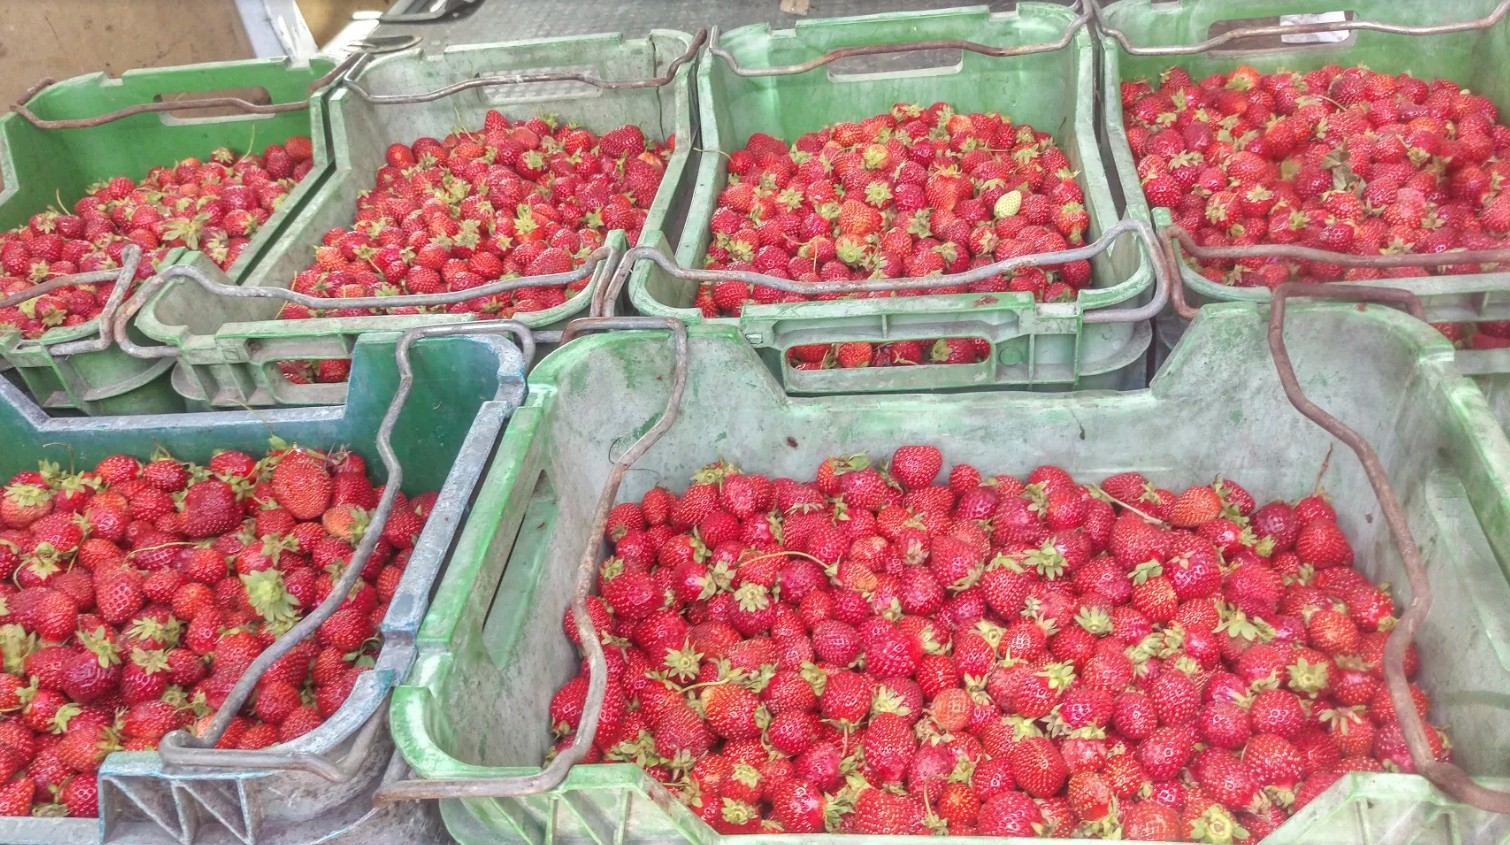 heaps of strawberries